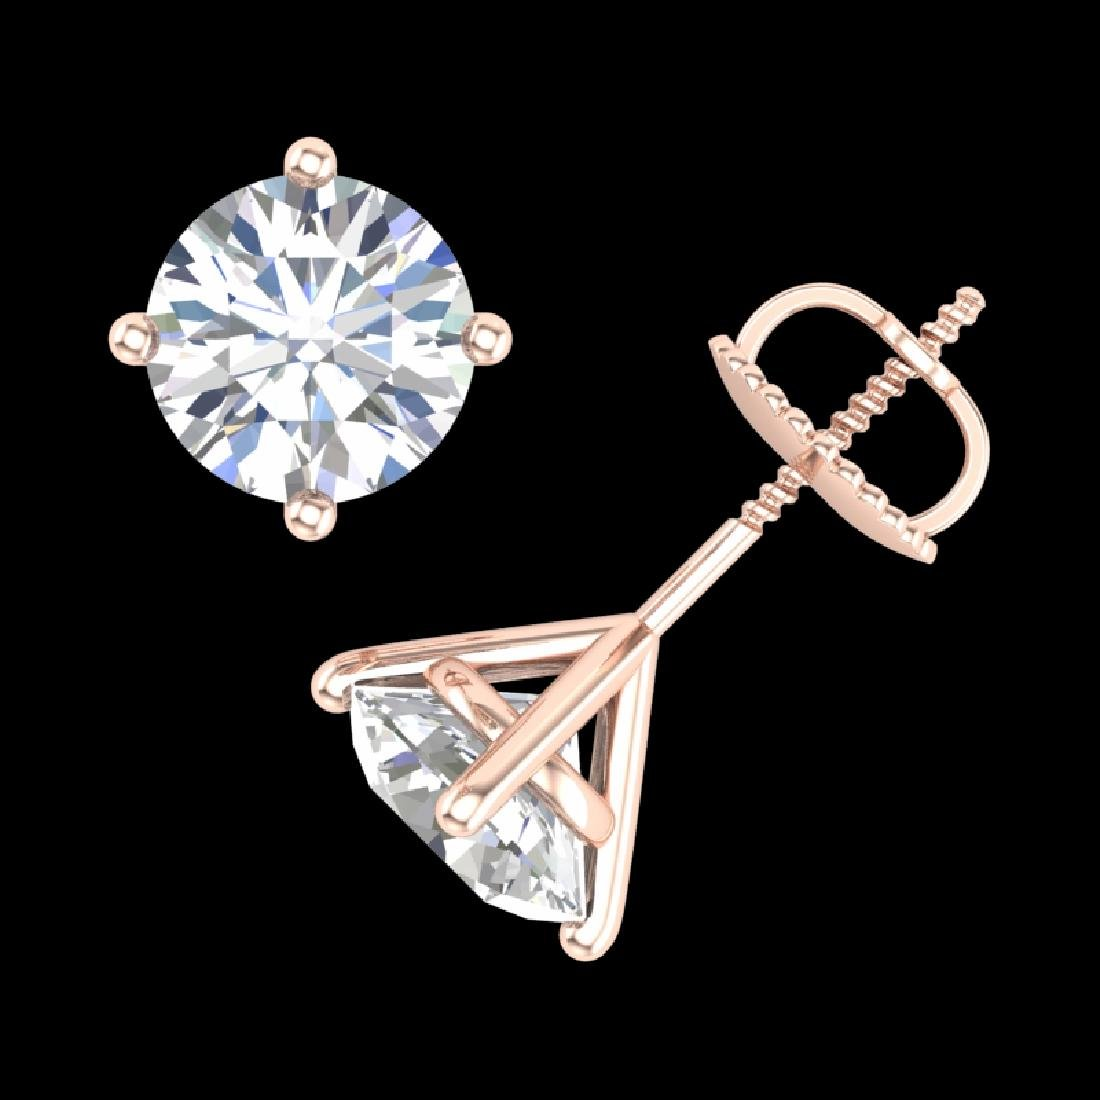 2.5 CTW VS/SI Diamond Solitaire Art Deco Stud Earrings - 3